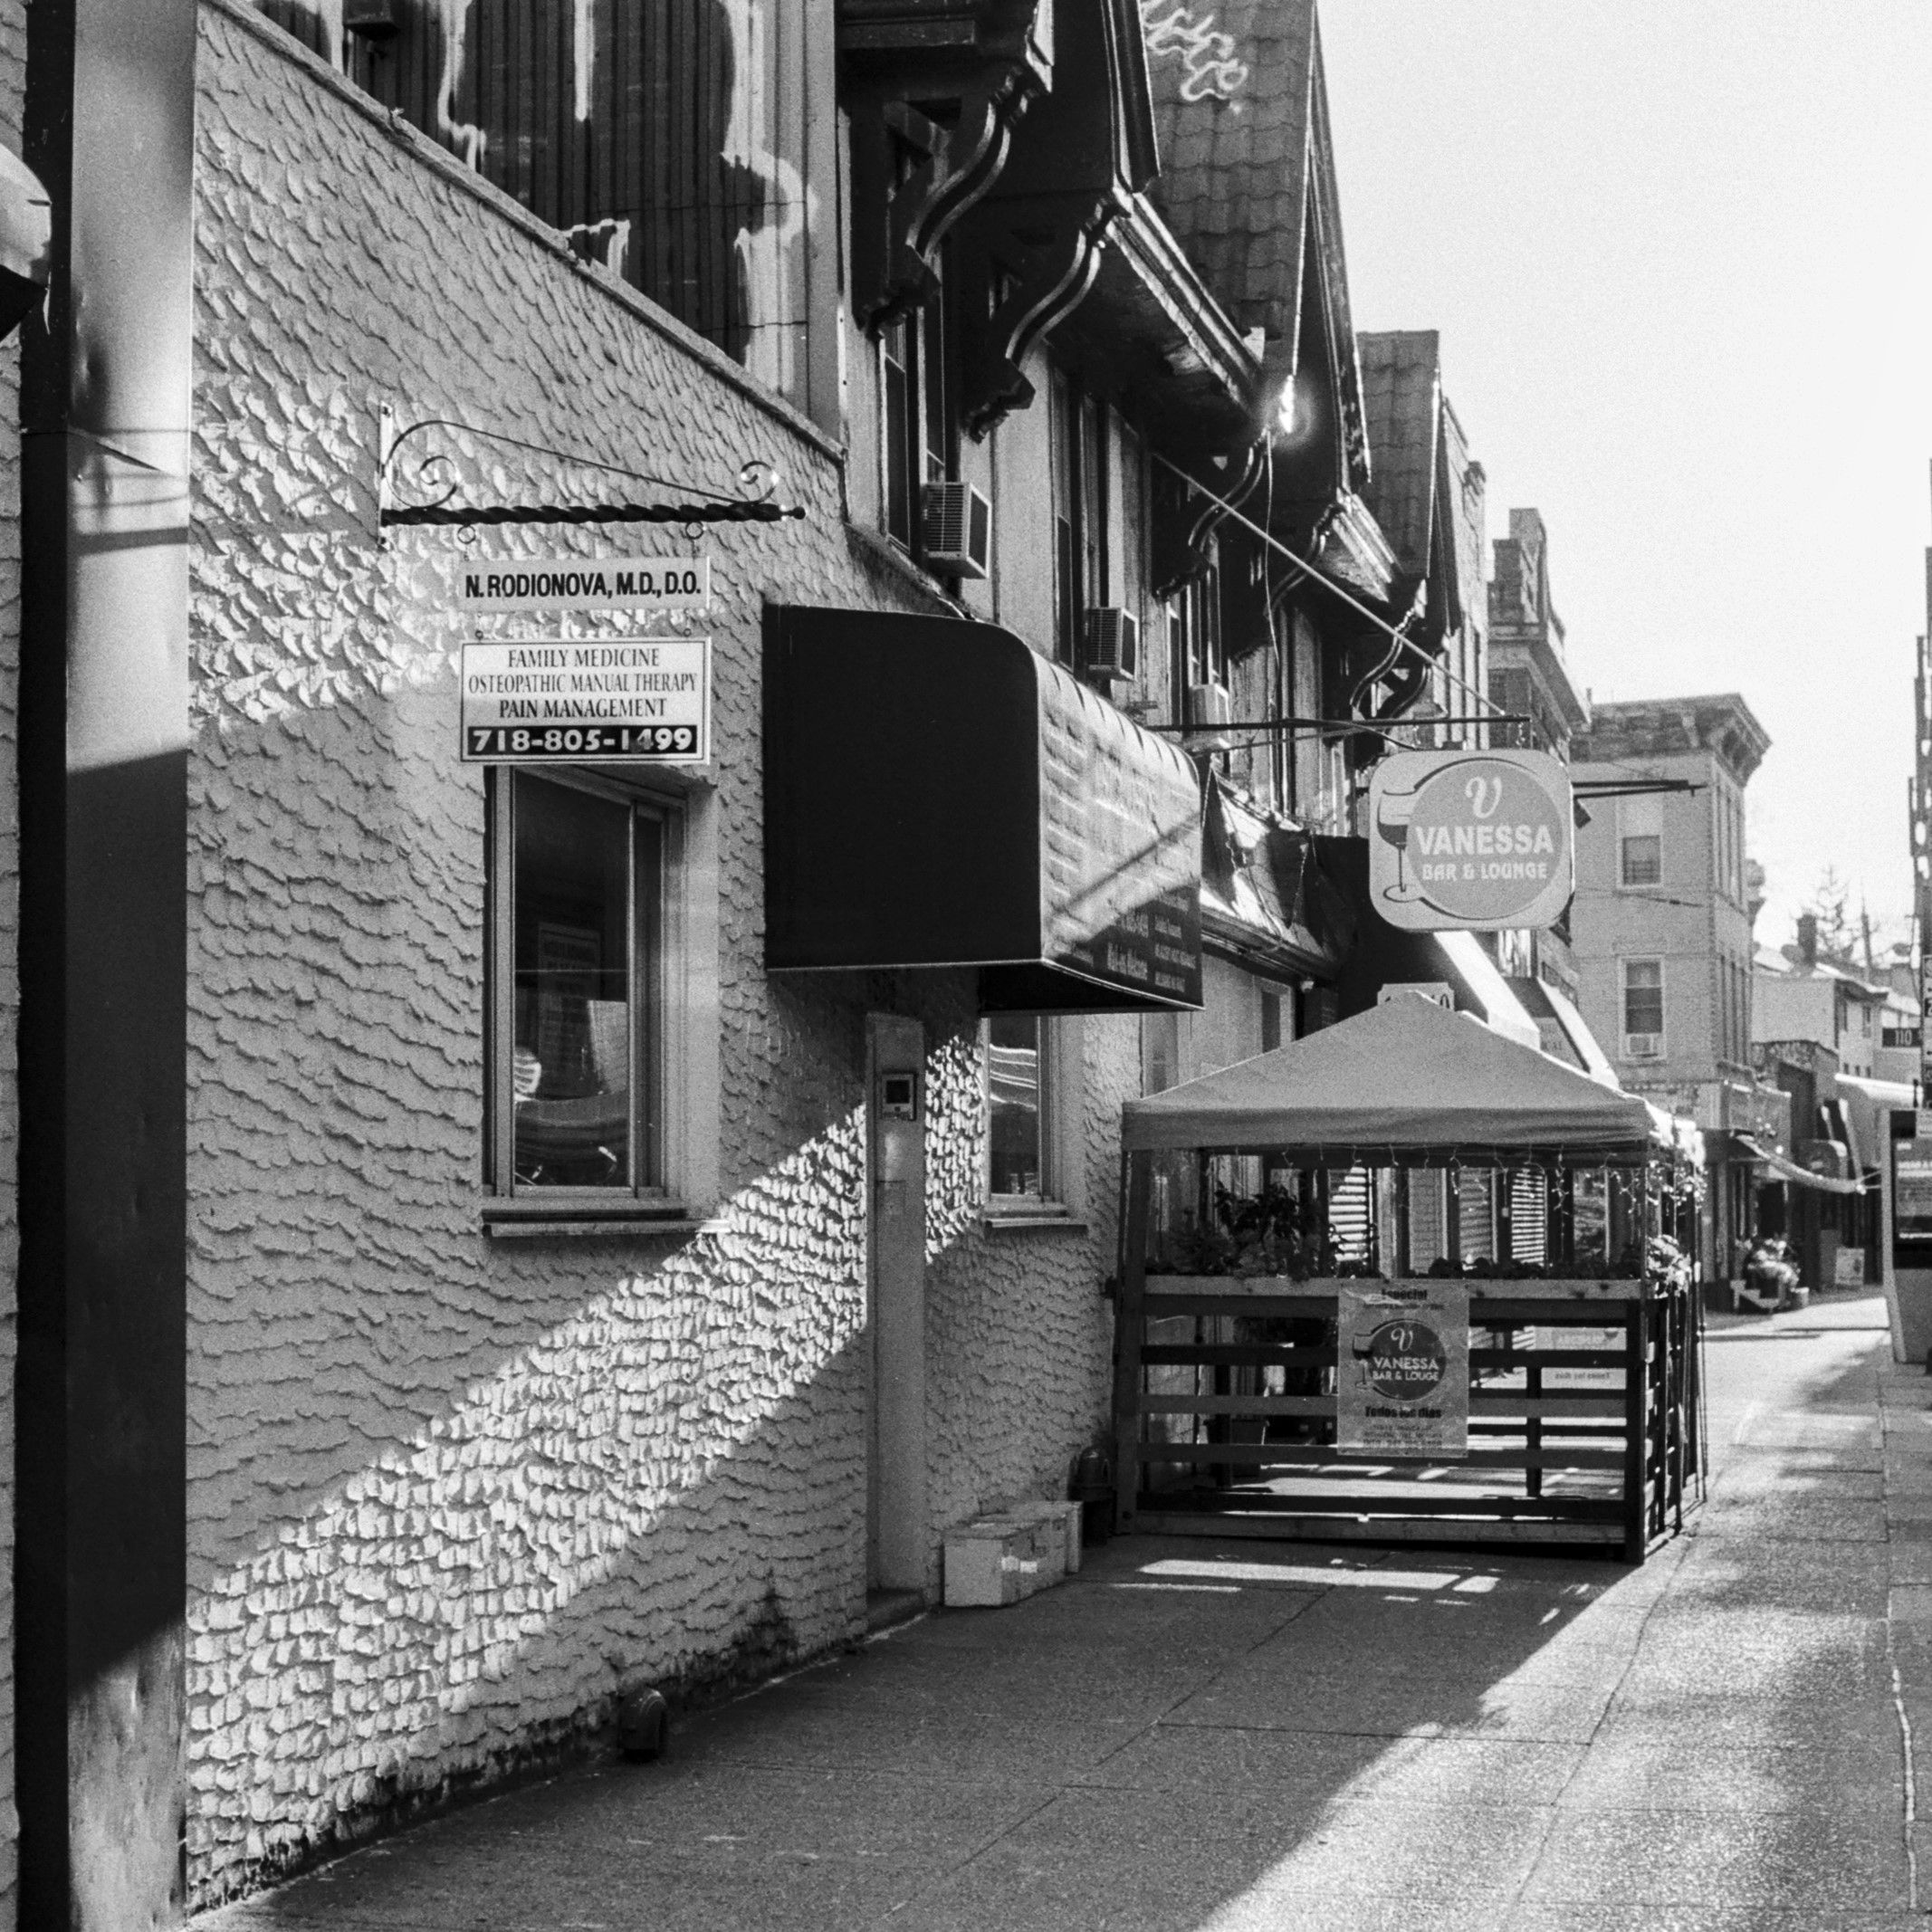 black and white image of a street in Queens